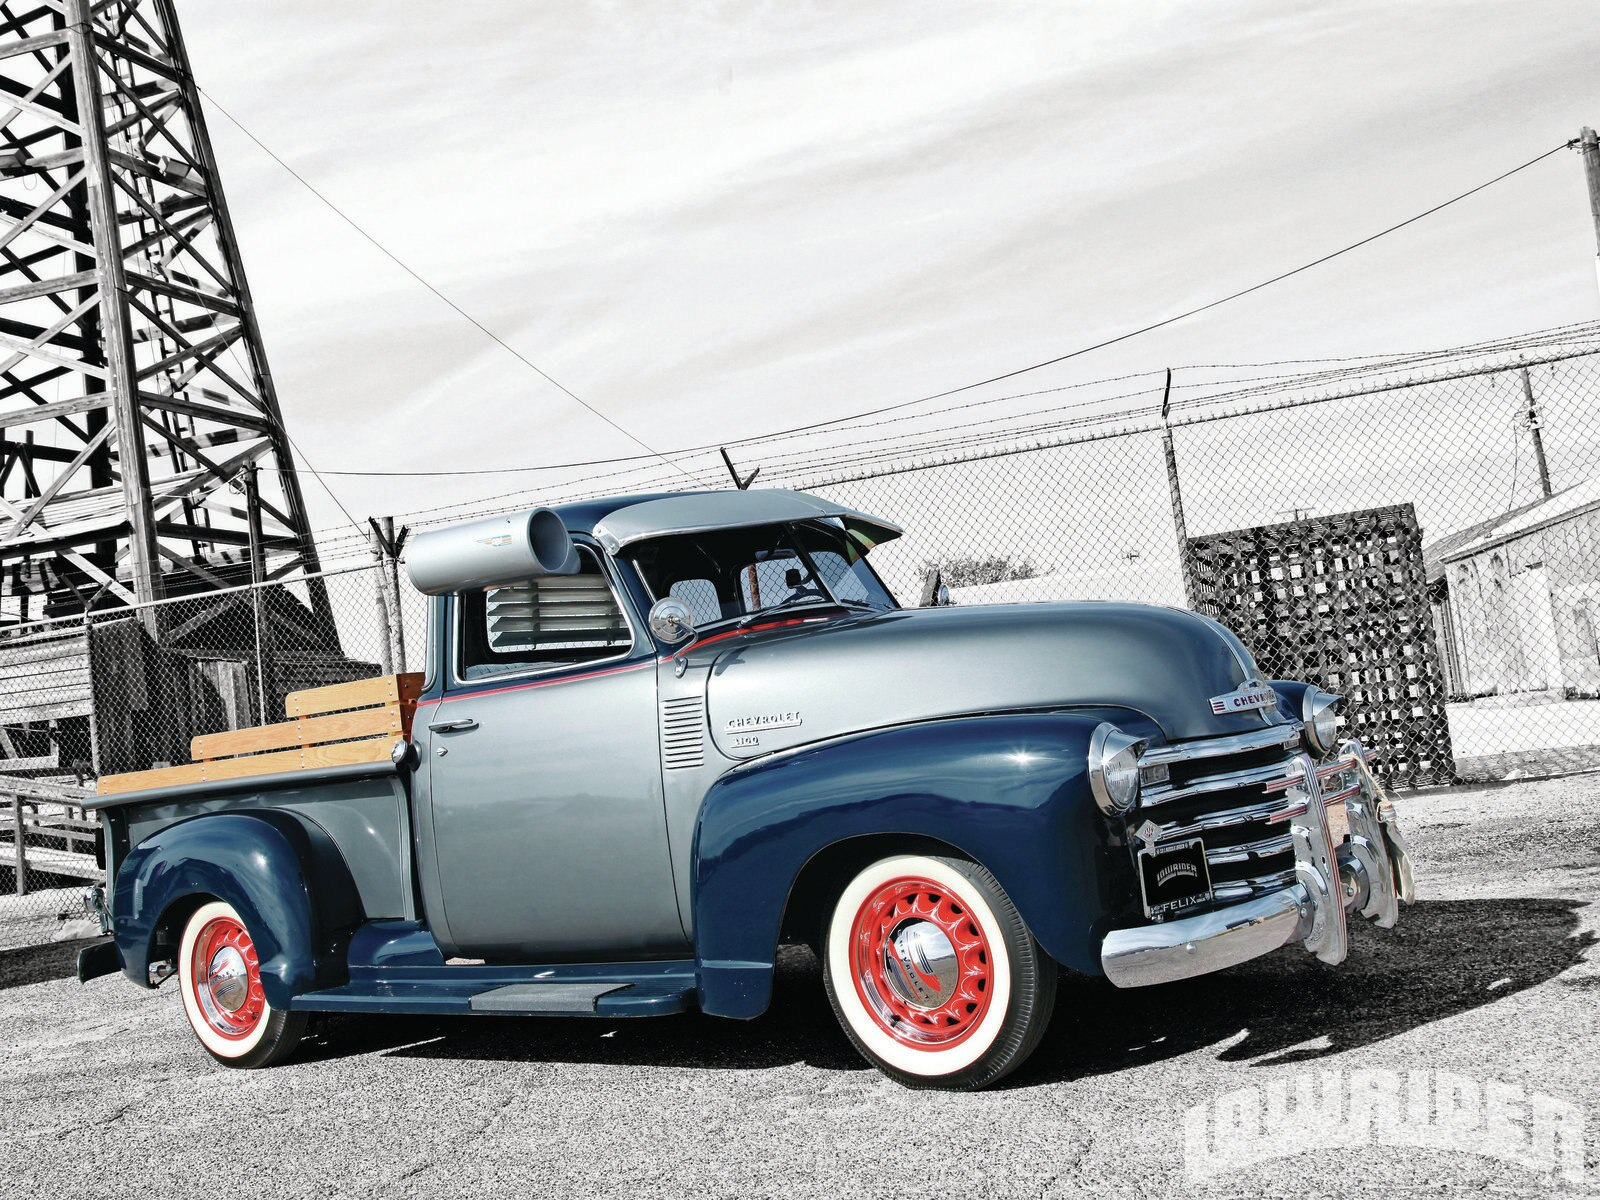 1949-chevrolet-3100-truck-right-side-view2